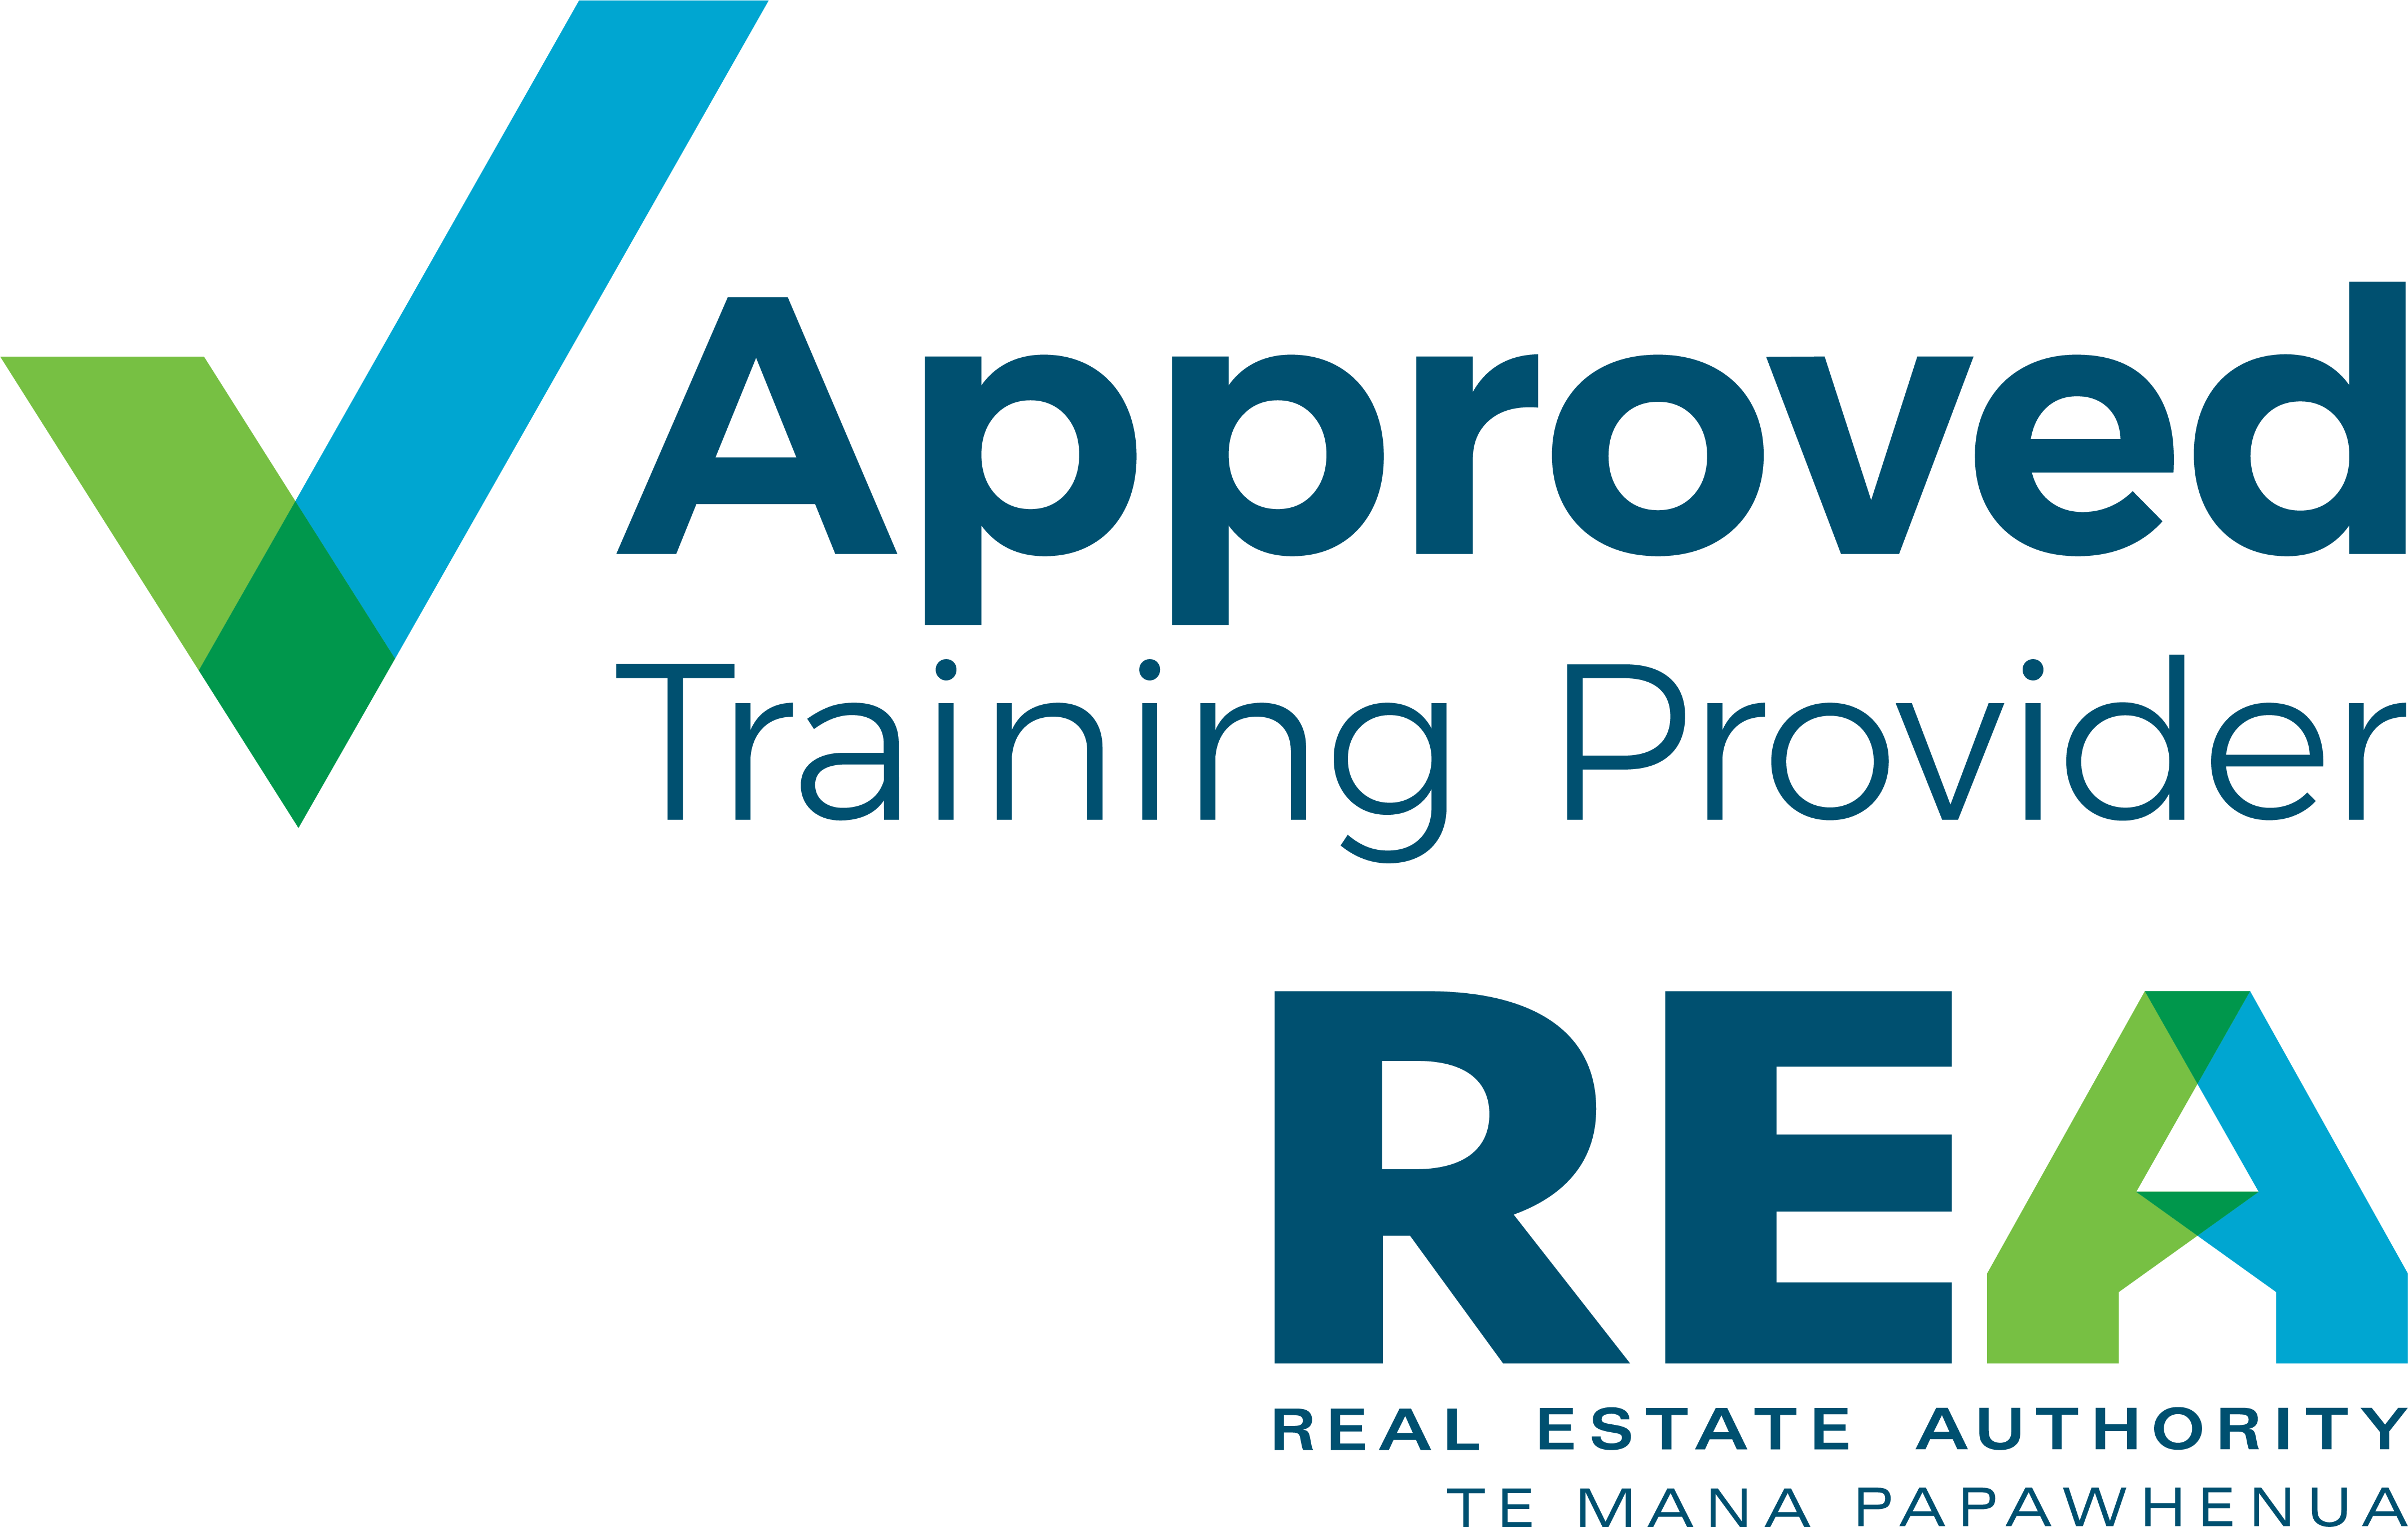 REA Training Provider Logo